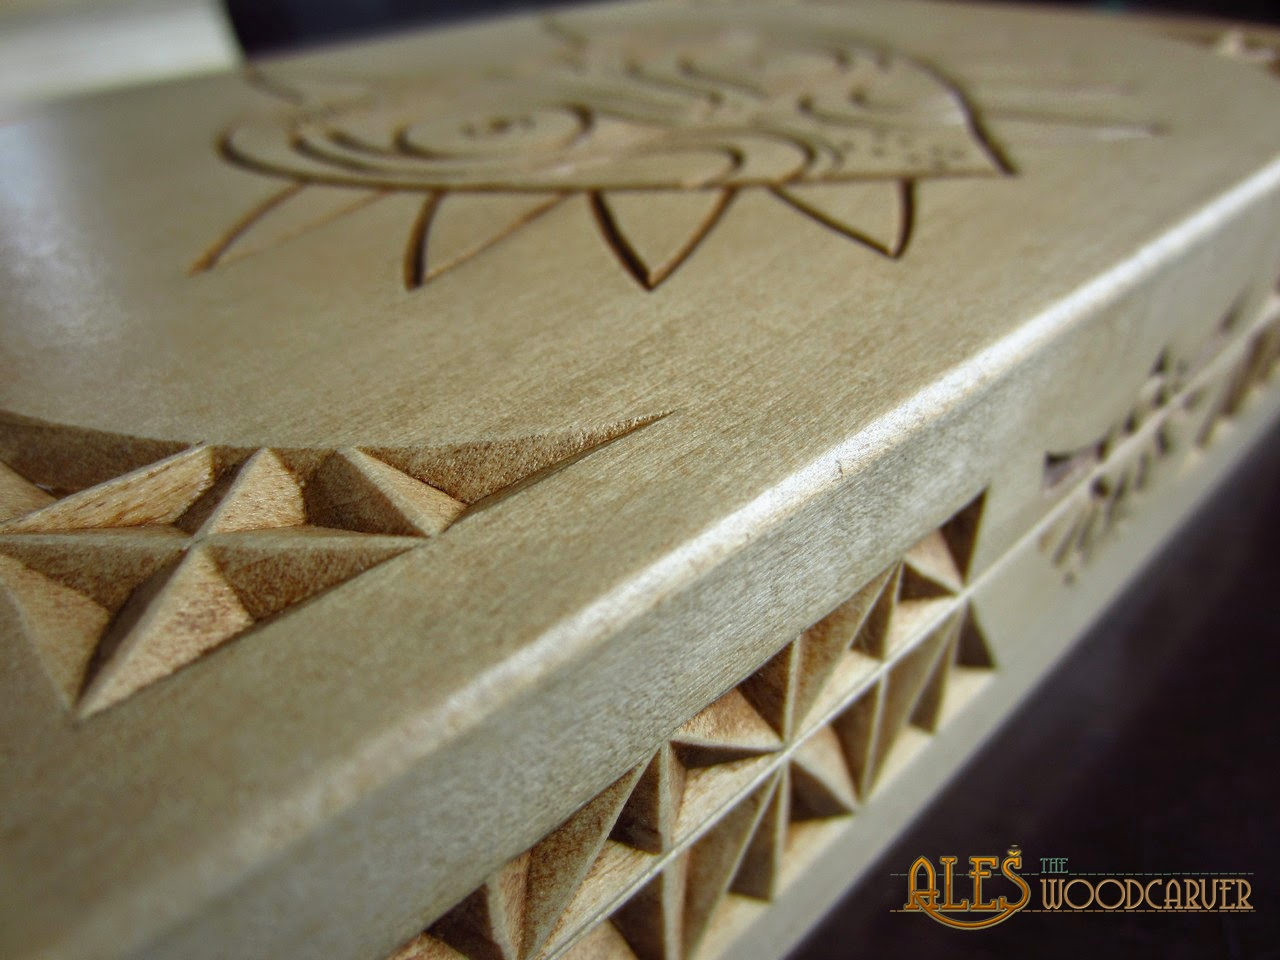 Ales the woodcarver legend of zelda trinket boxes